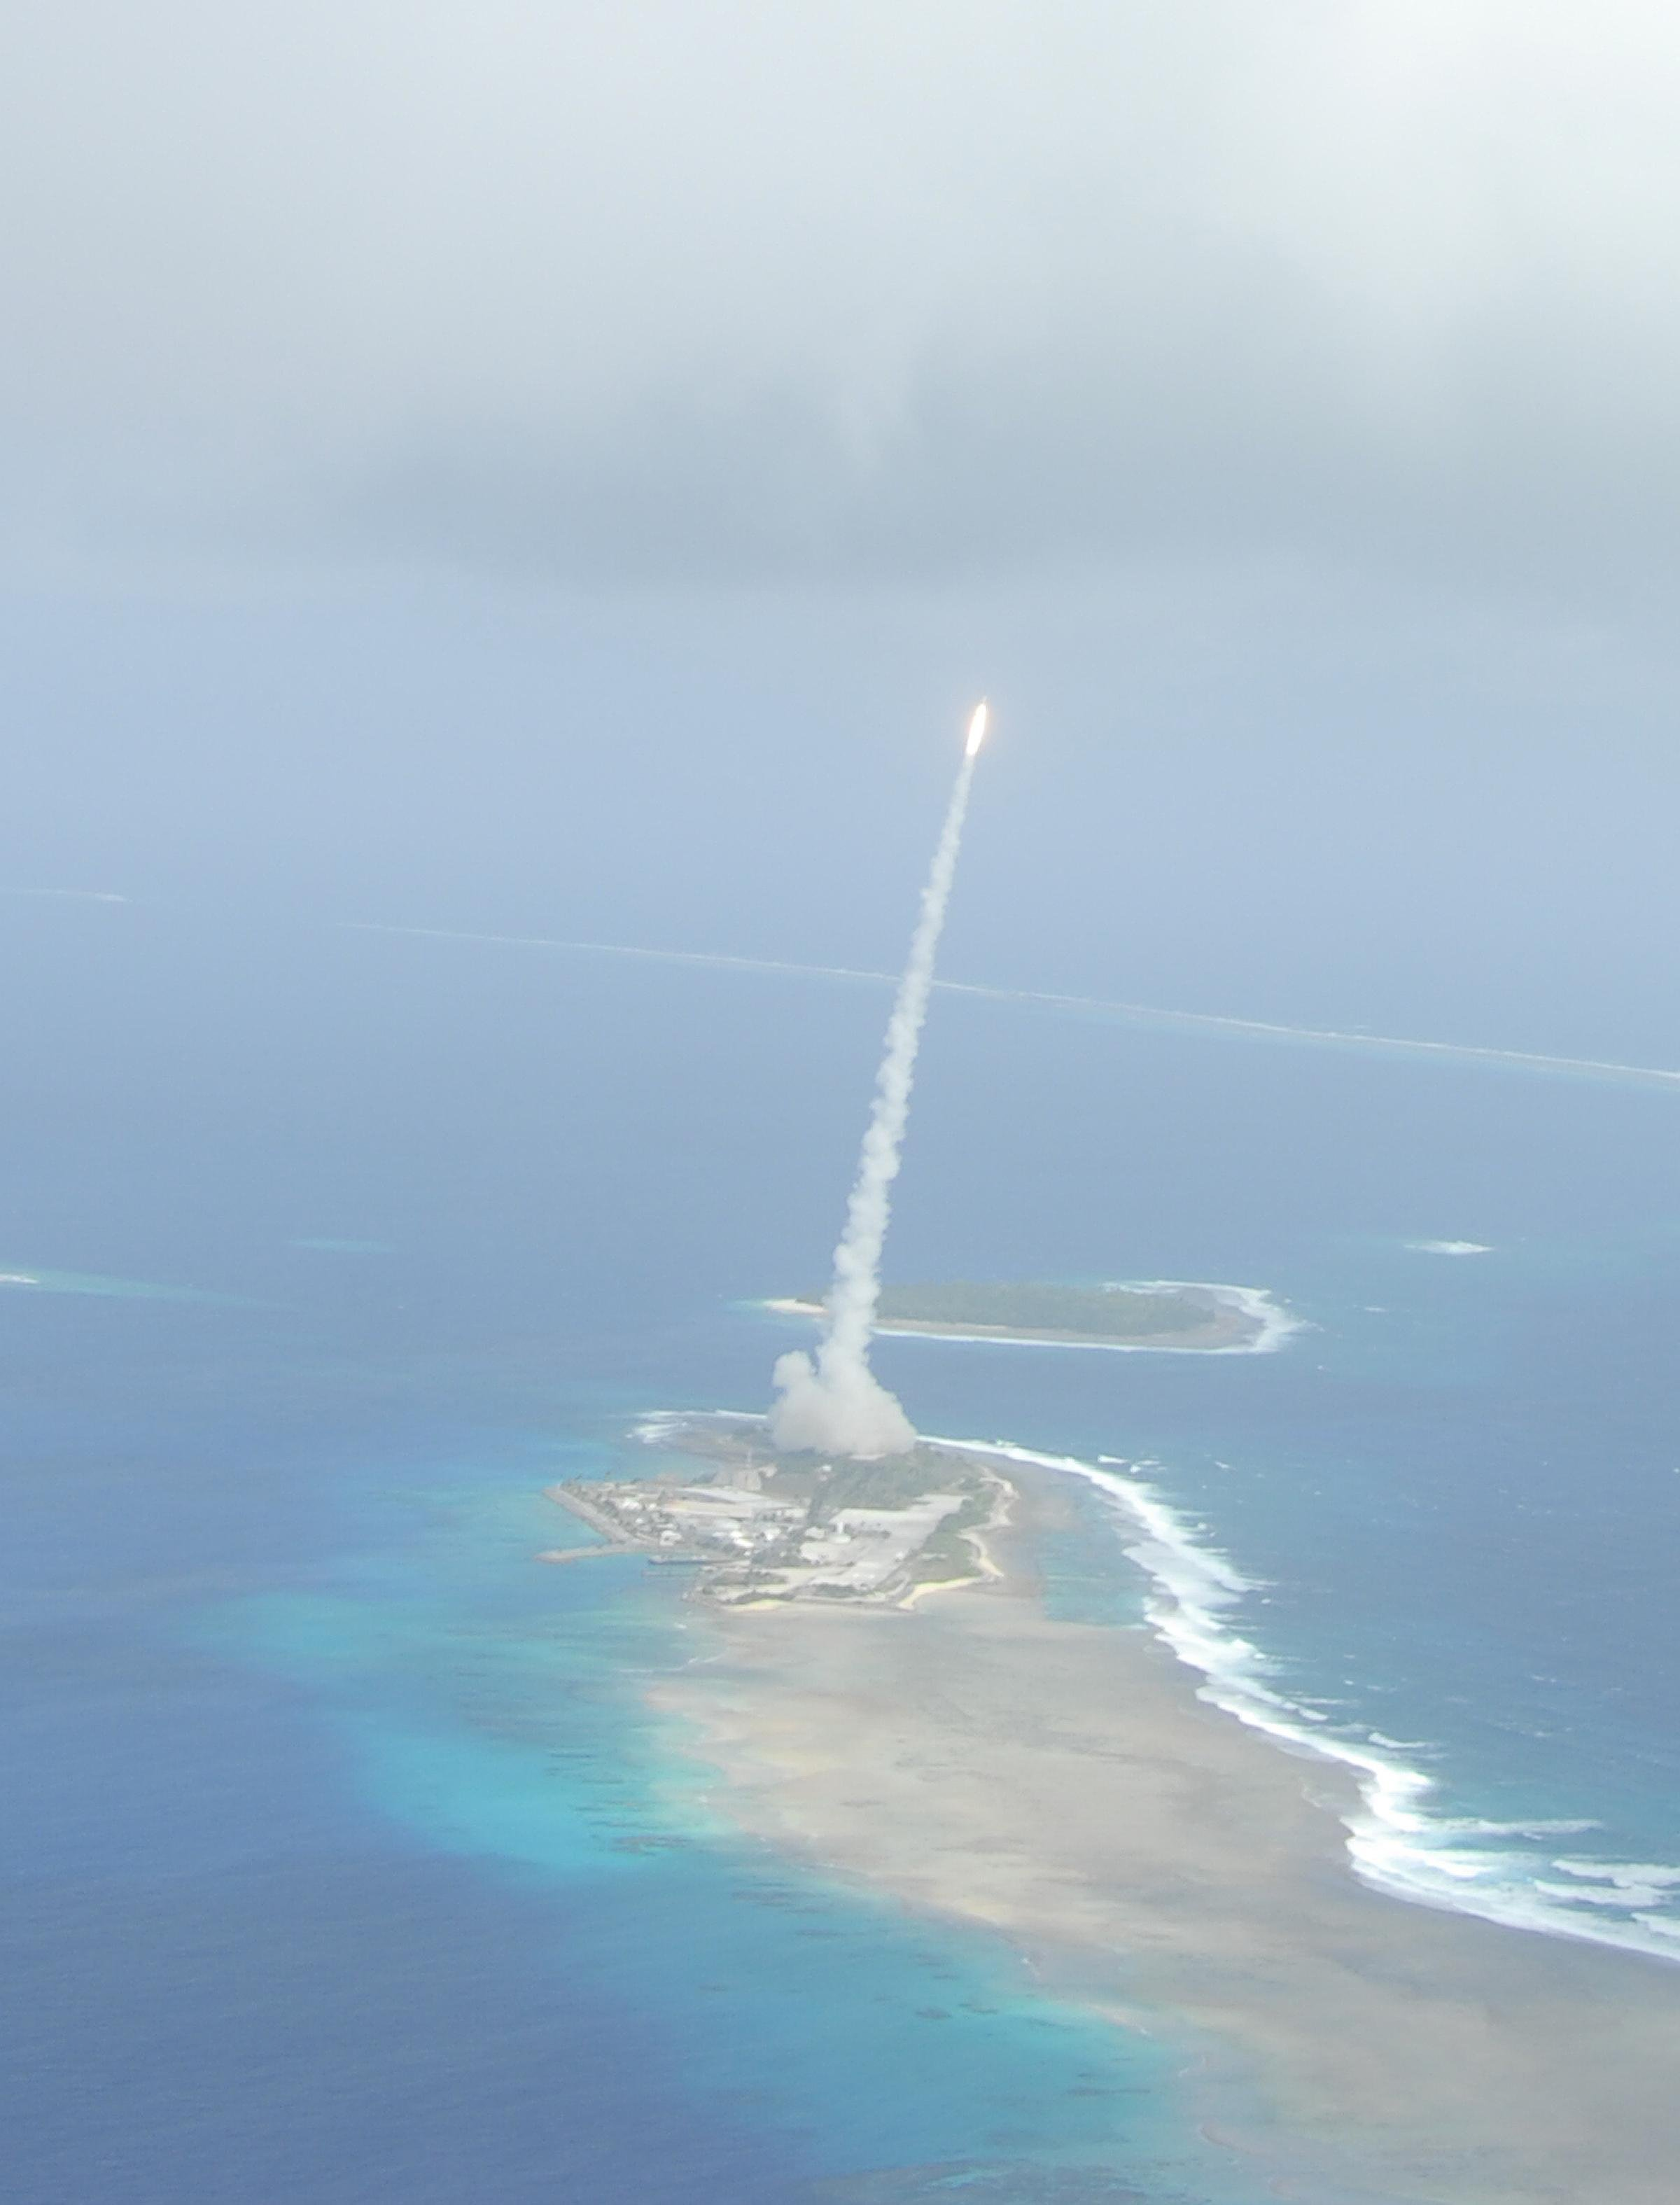 A missile being launched.